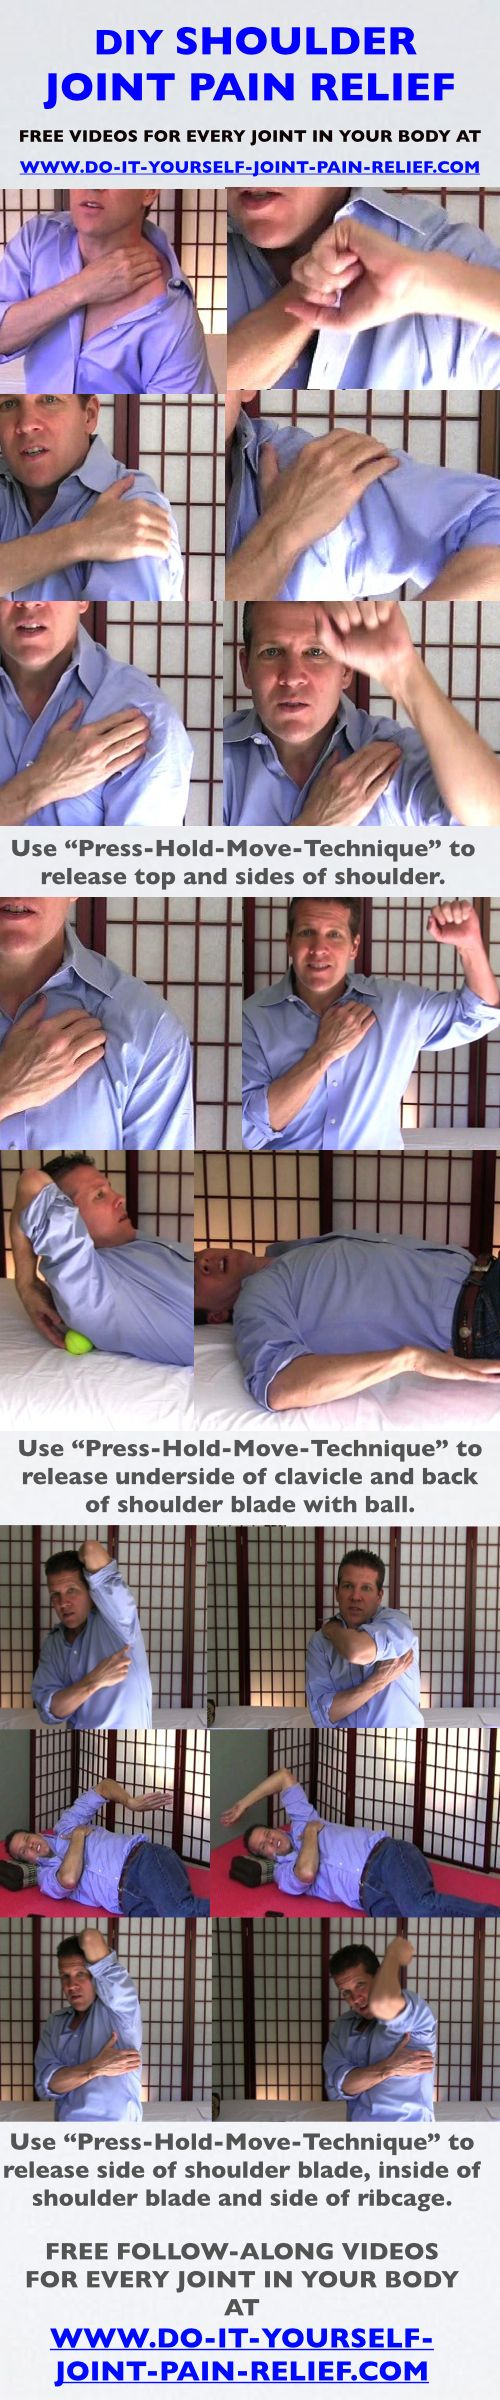 "DIY Shoulder Joint Pain Relief - Free follow-along videos and  free pain relief ""Cheat Sheet""..."